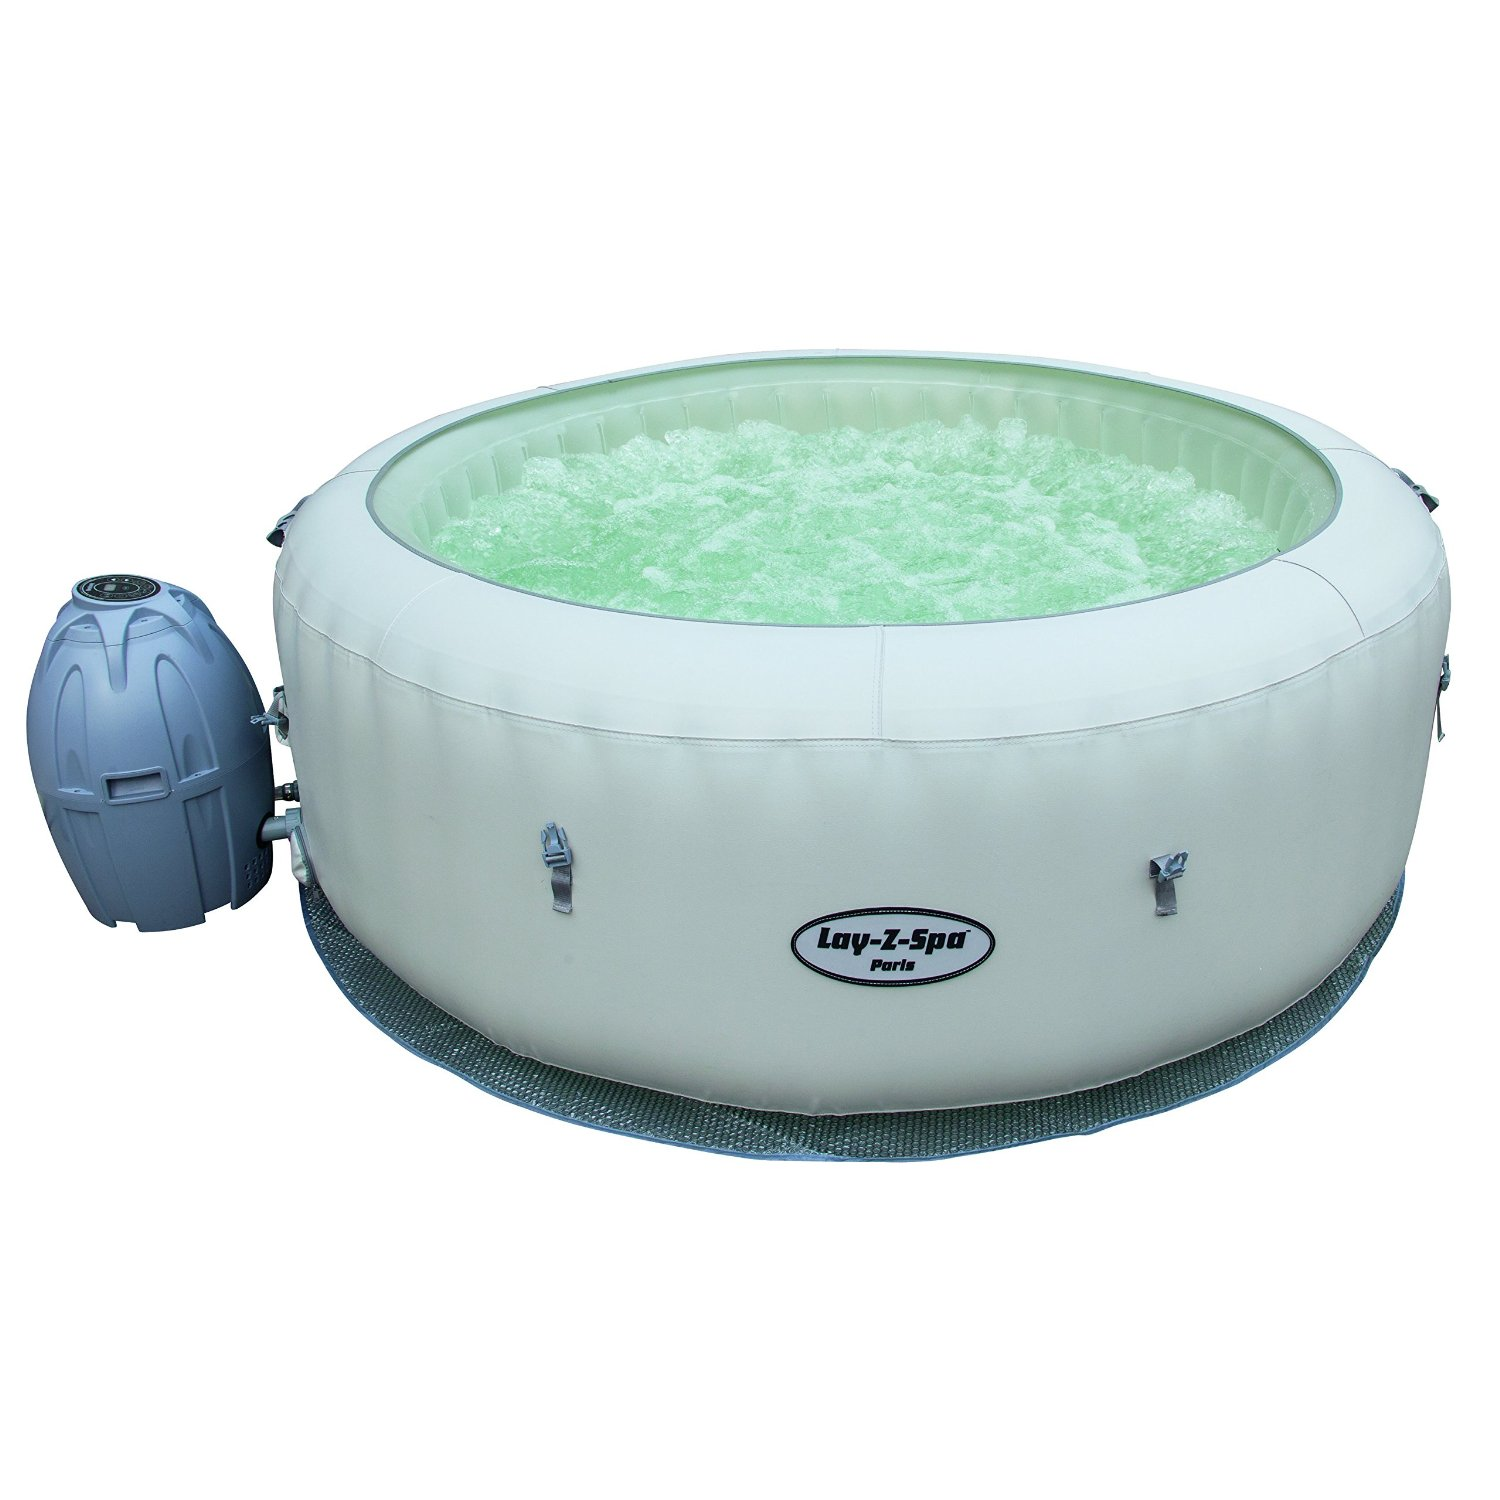 Laz-Y-Spa Paris Inflatable Hot Tub